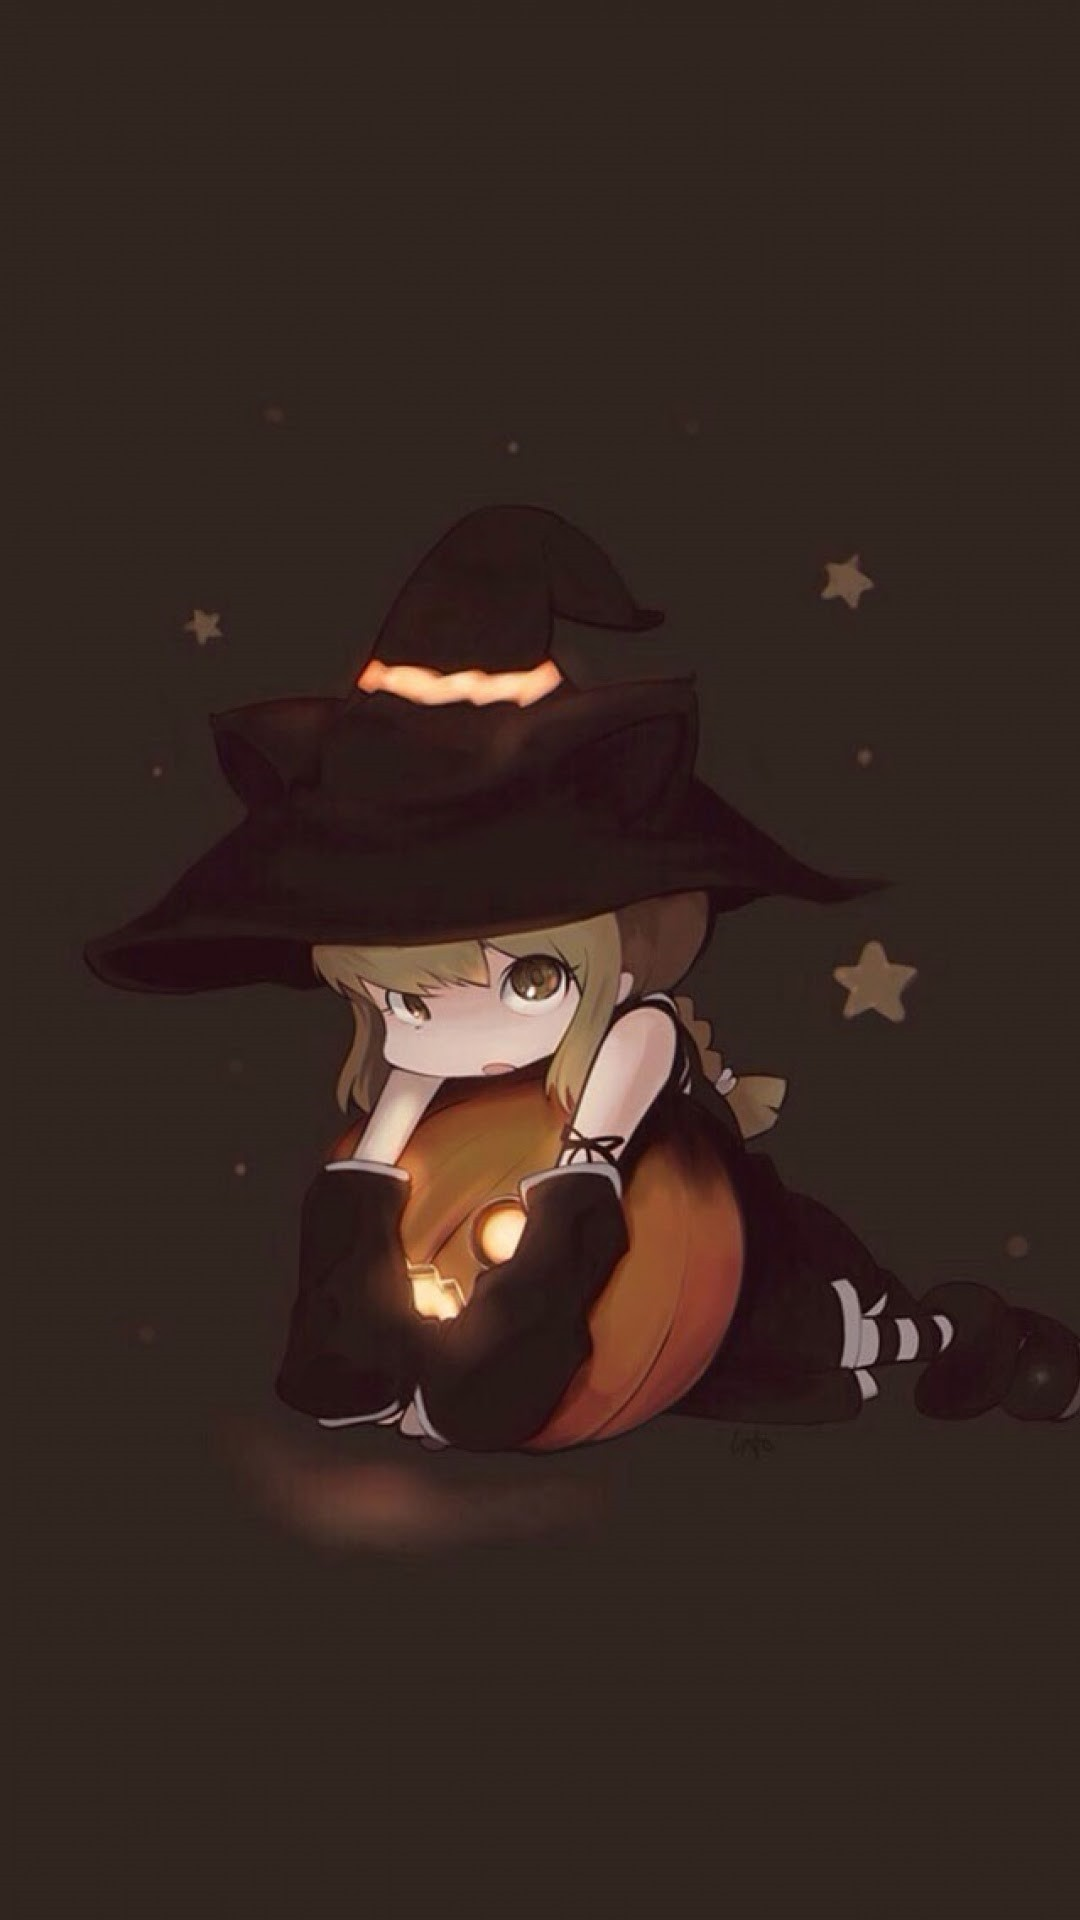 Cute Halloween wallpaper for android